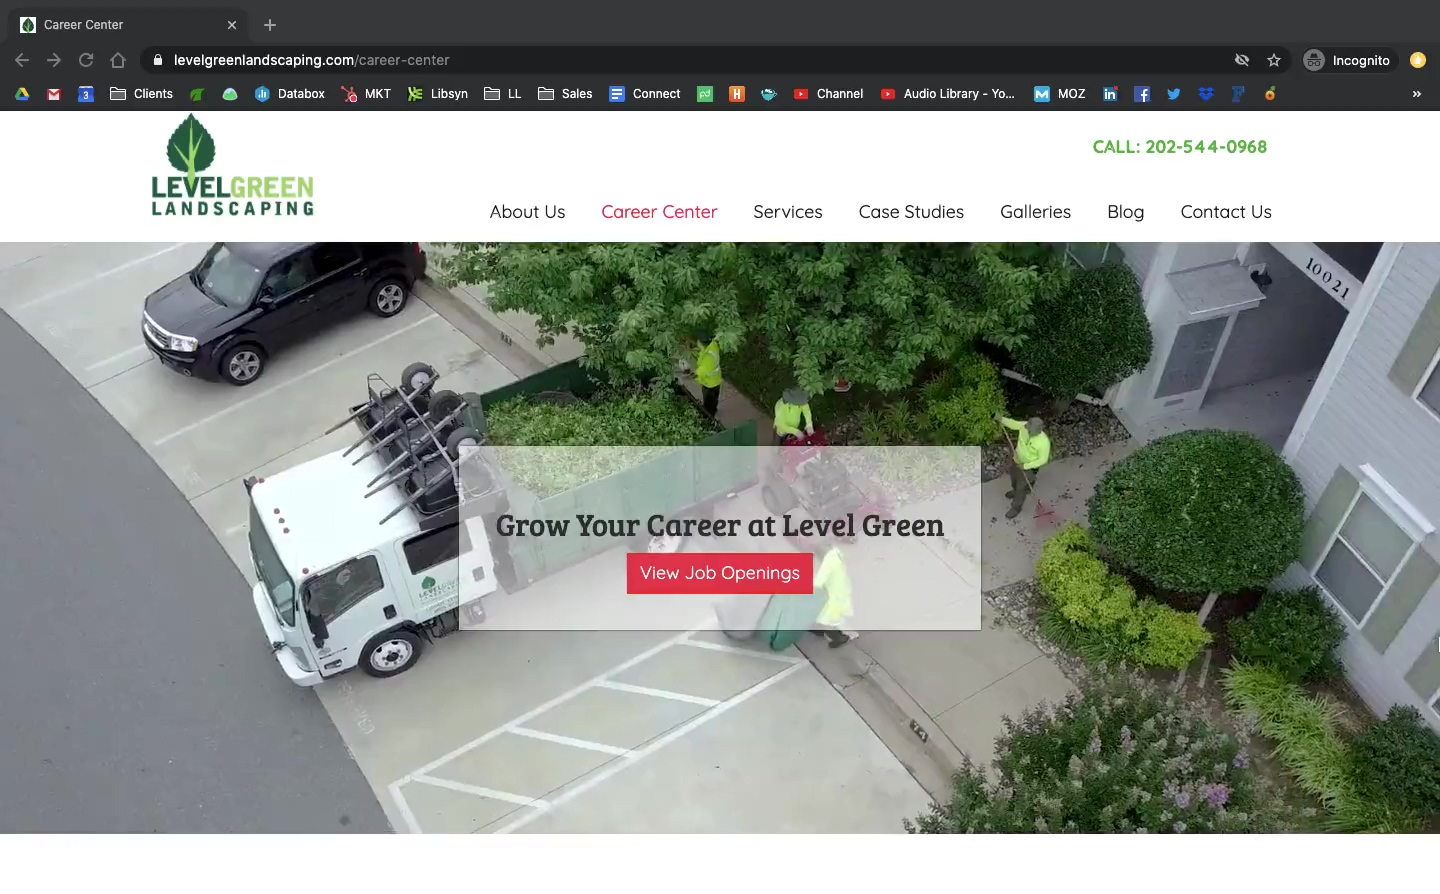 Level Green Landscaping Recruiting Video Loop